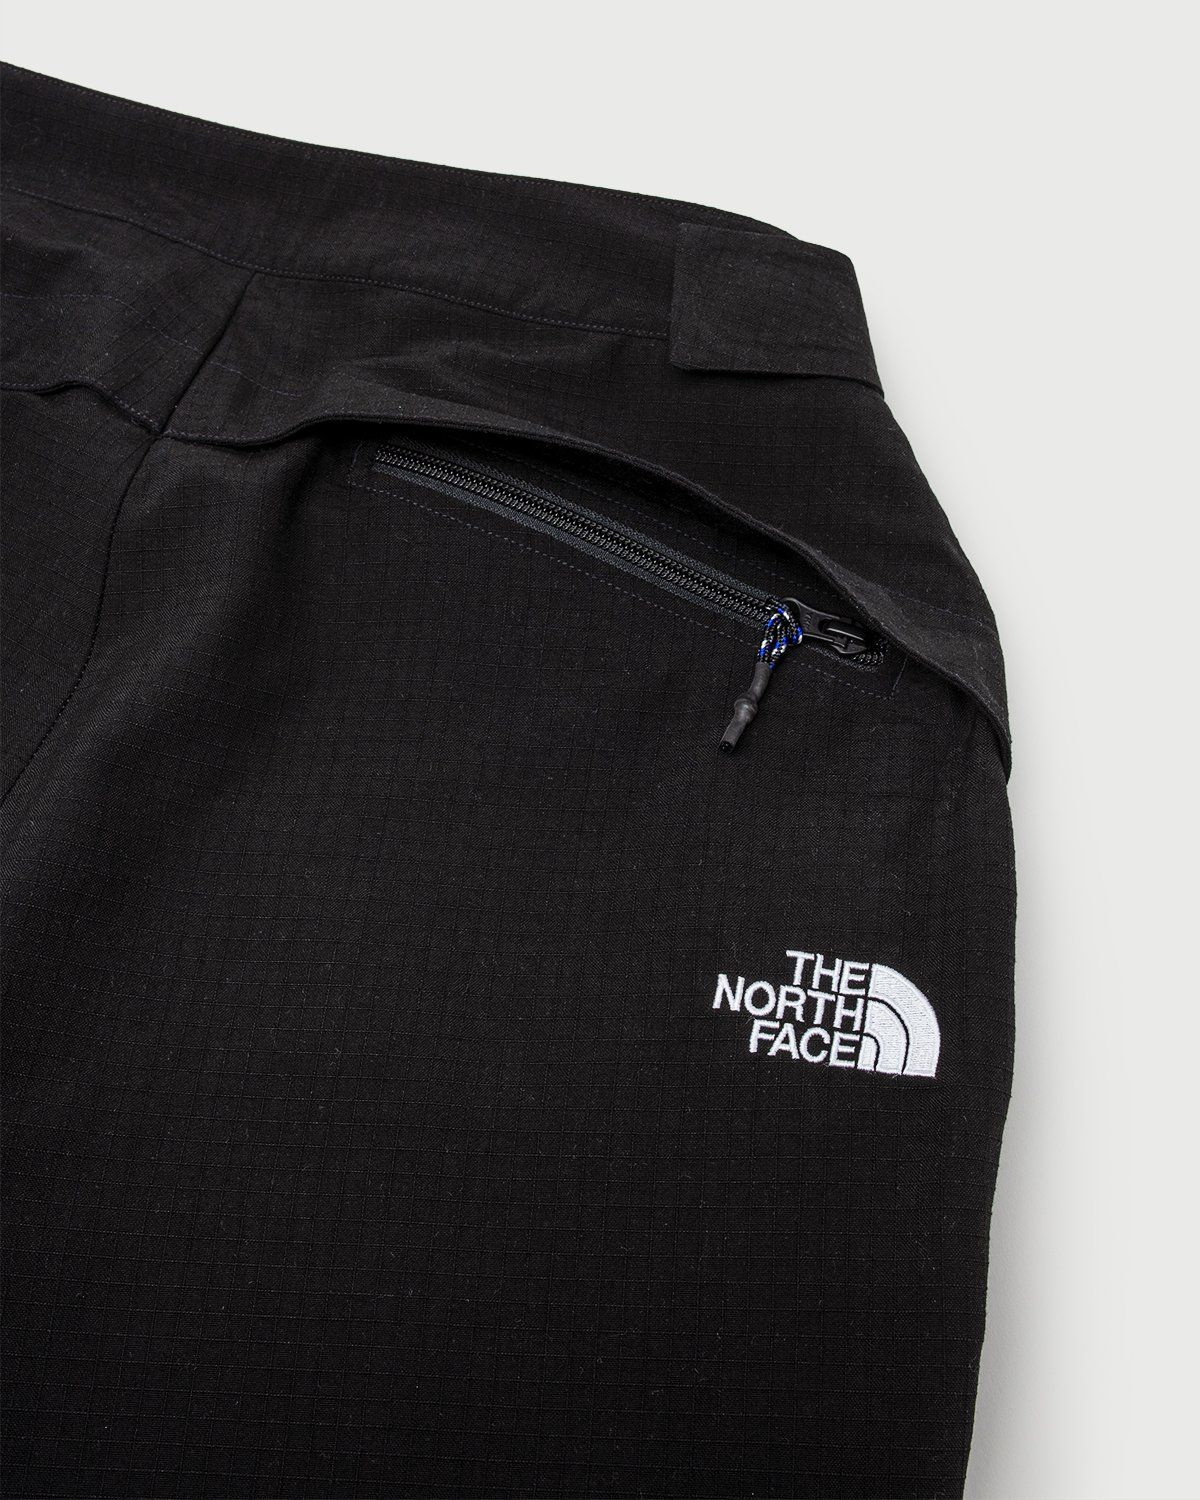 The North Face Black Series - Ripstop Trousers Black - Image 4